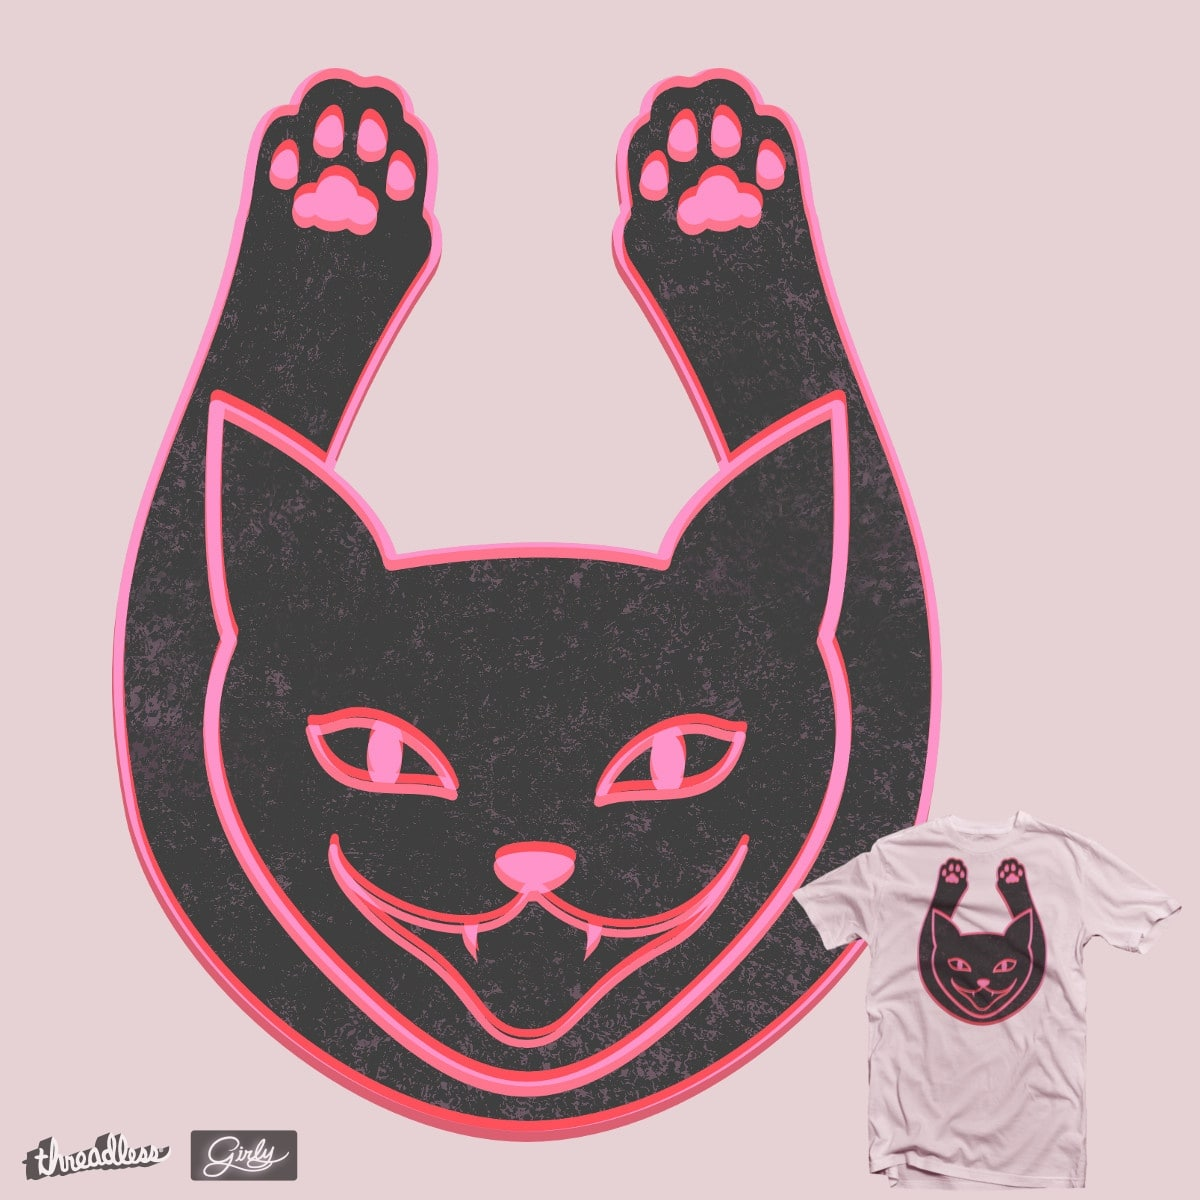 Gatos by hilektron on Threadless